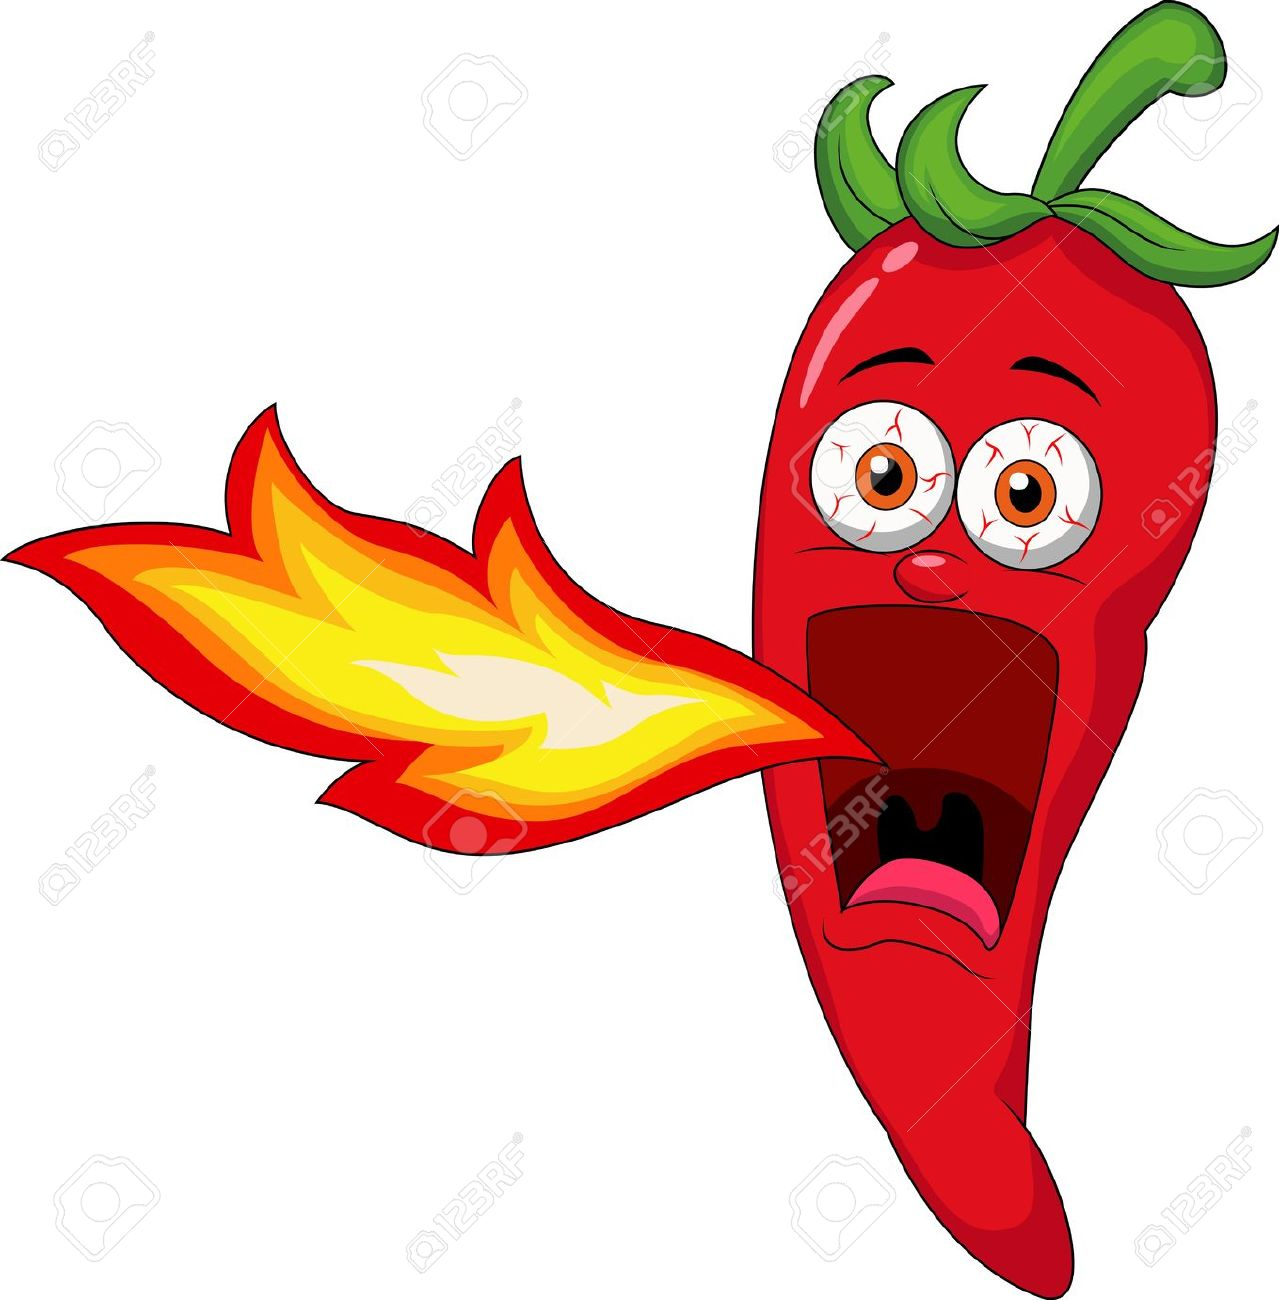 1279x1300 Pepper Clipart Animated